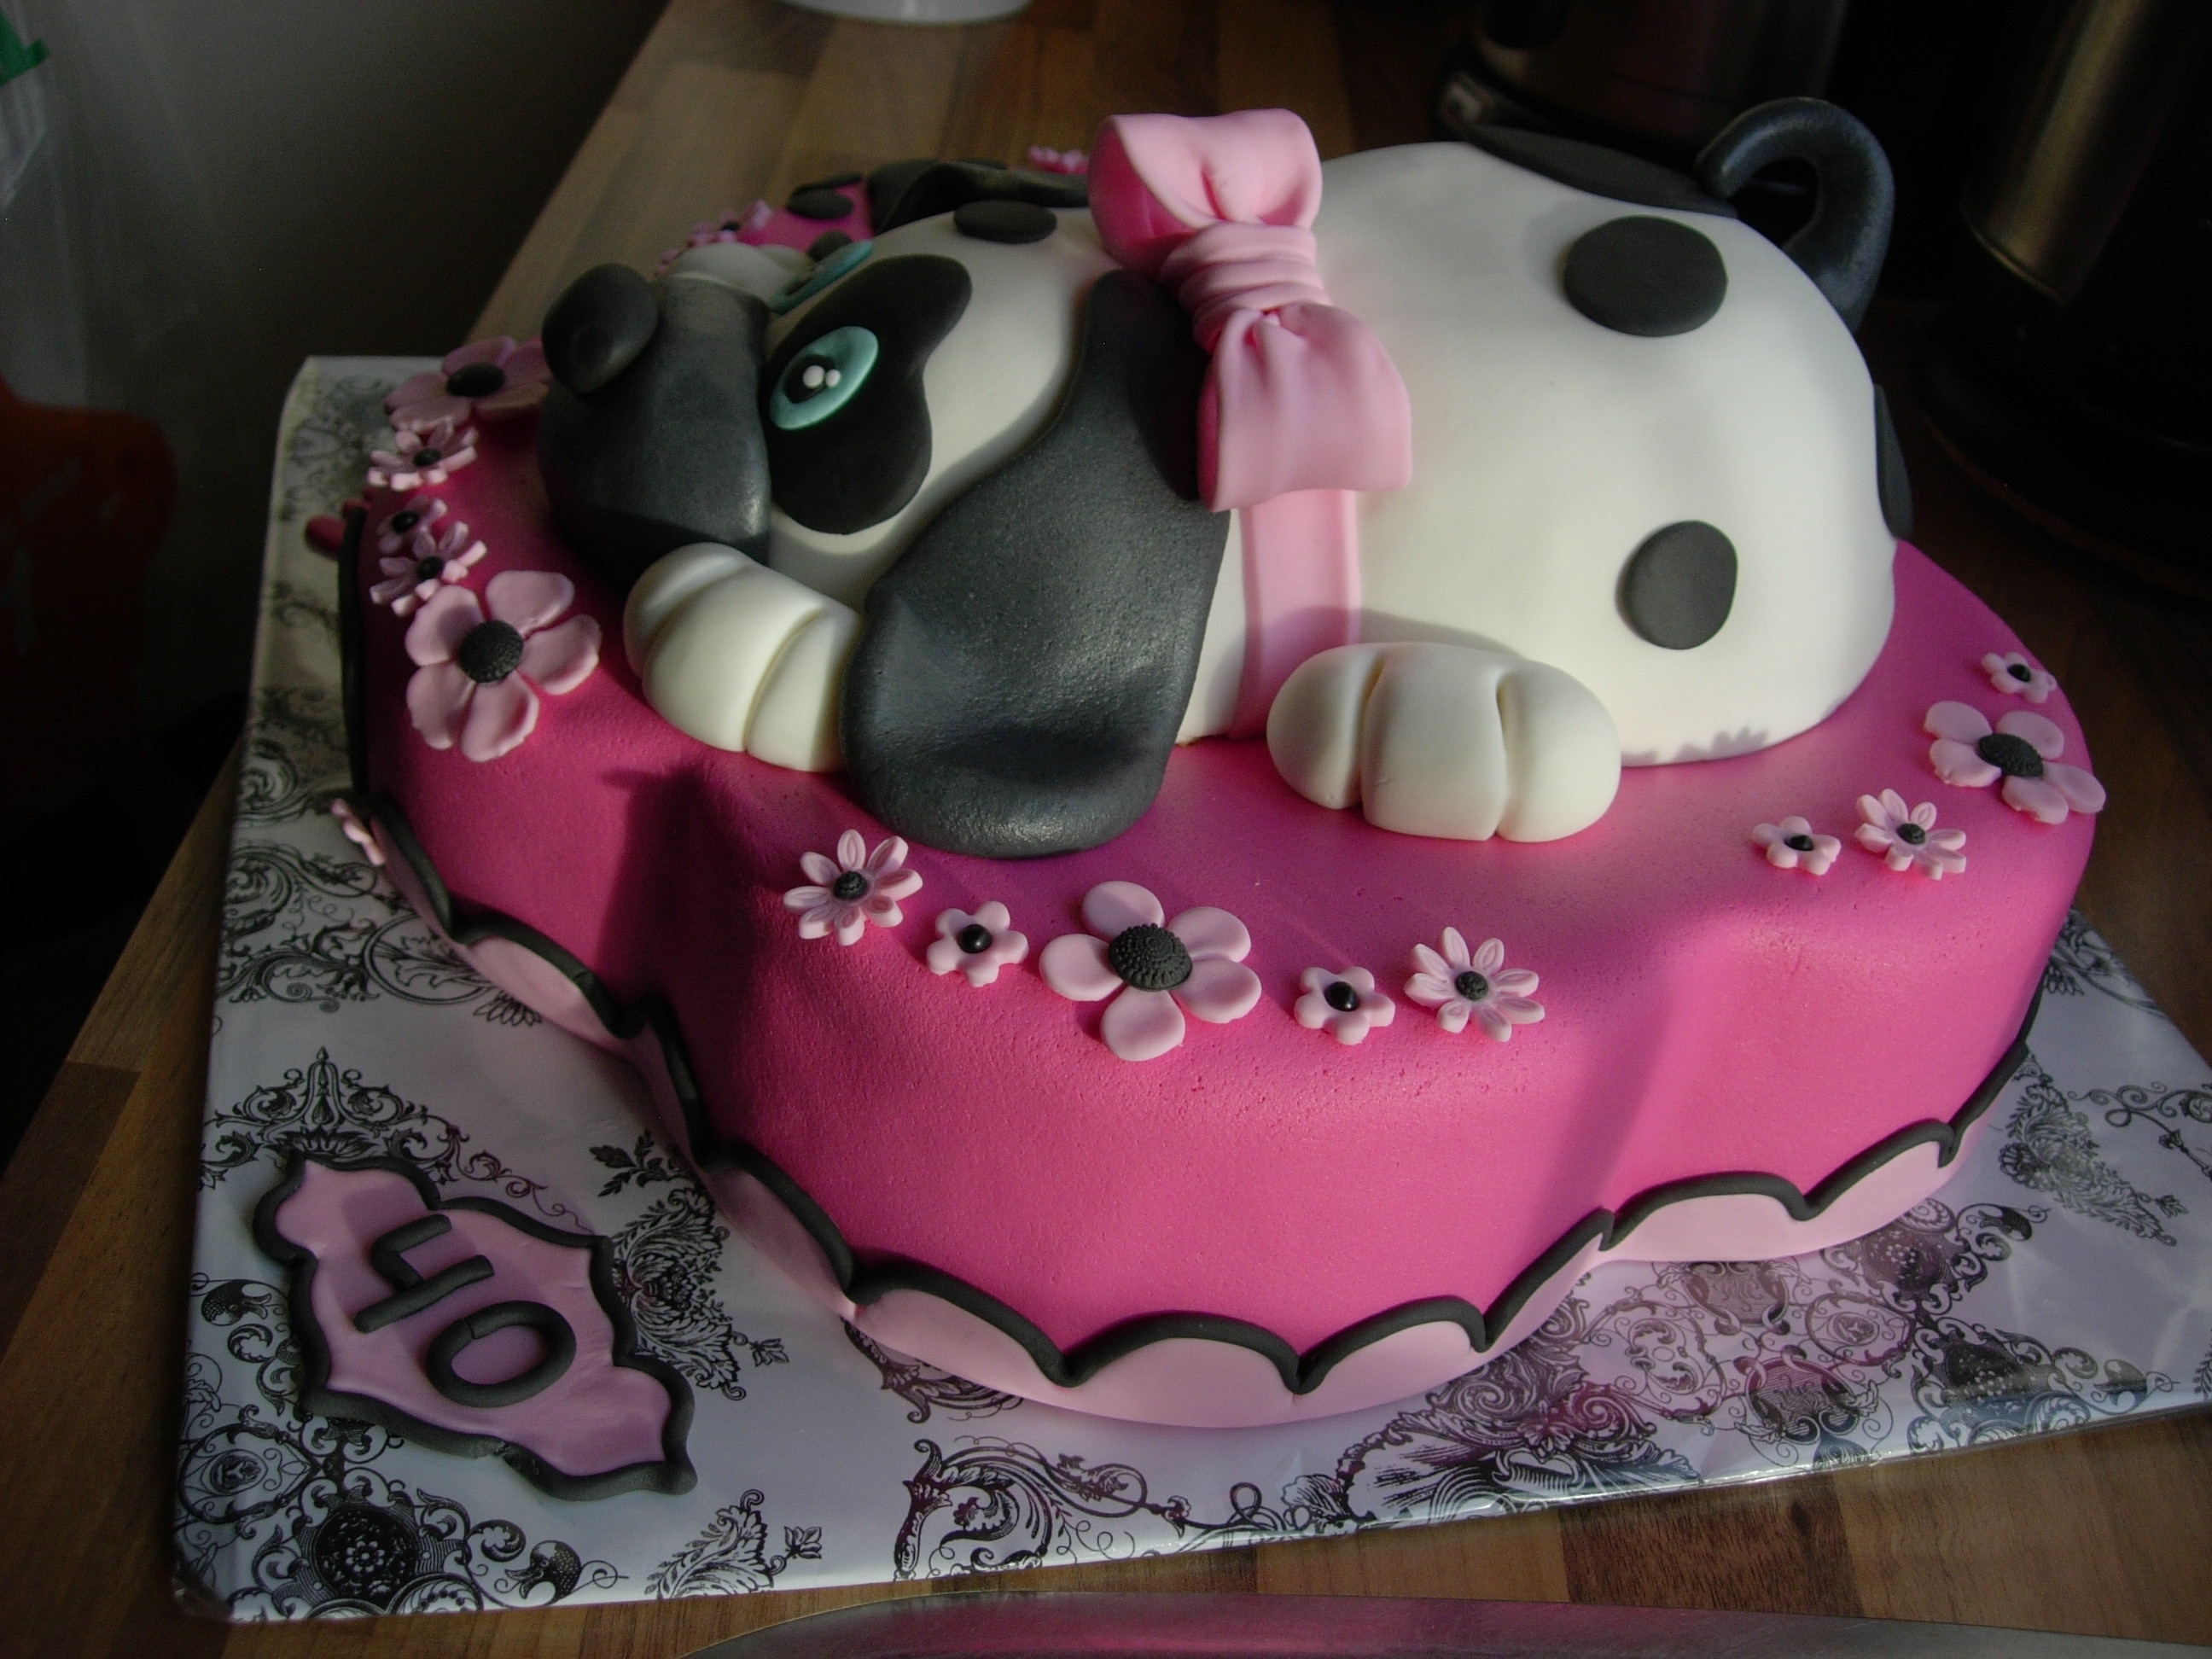 Cake Images For Hubby : Flower Amp Dog Birthday Cake For My Daughter 7 And Husband ...